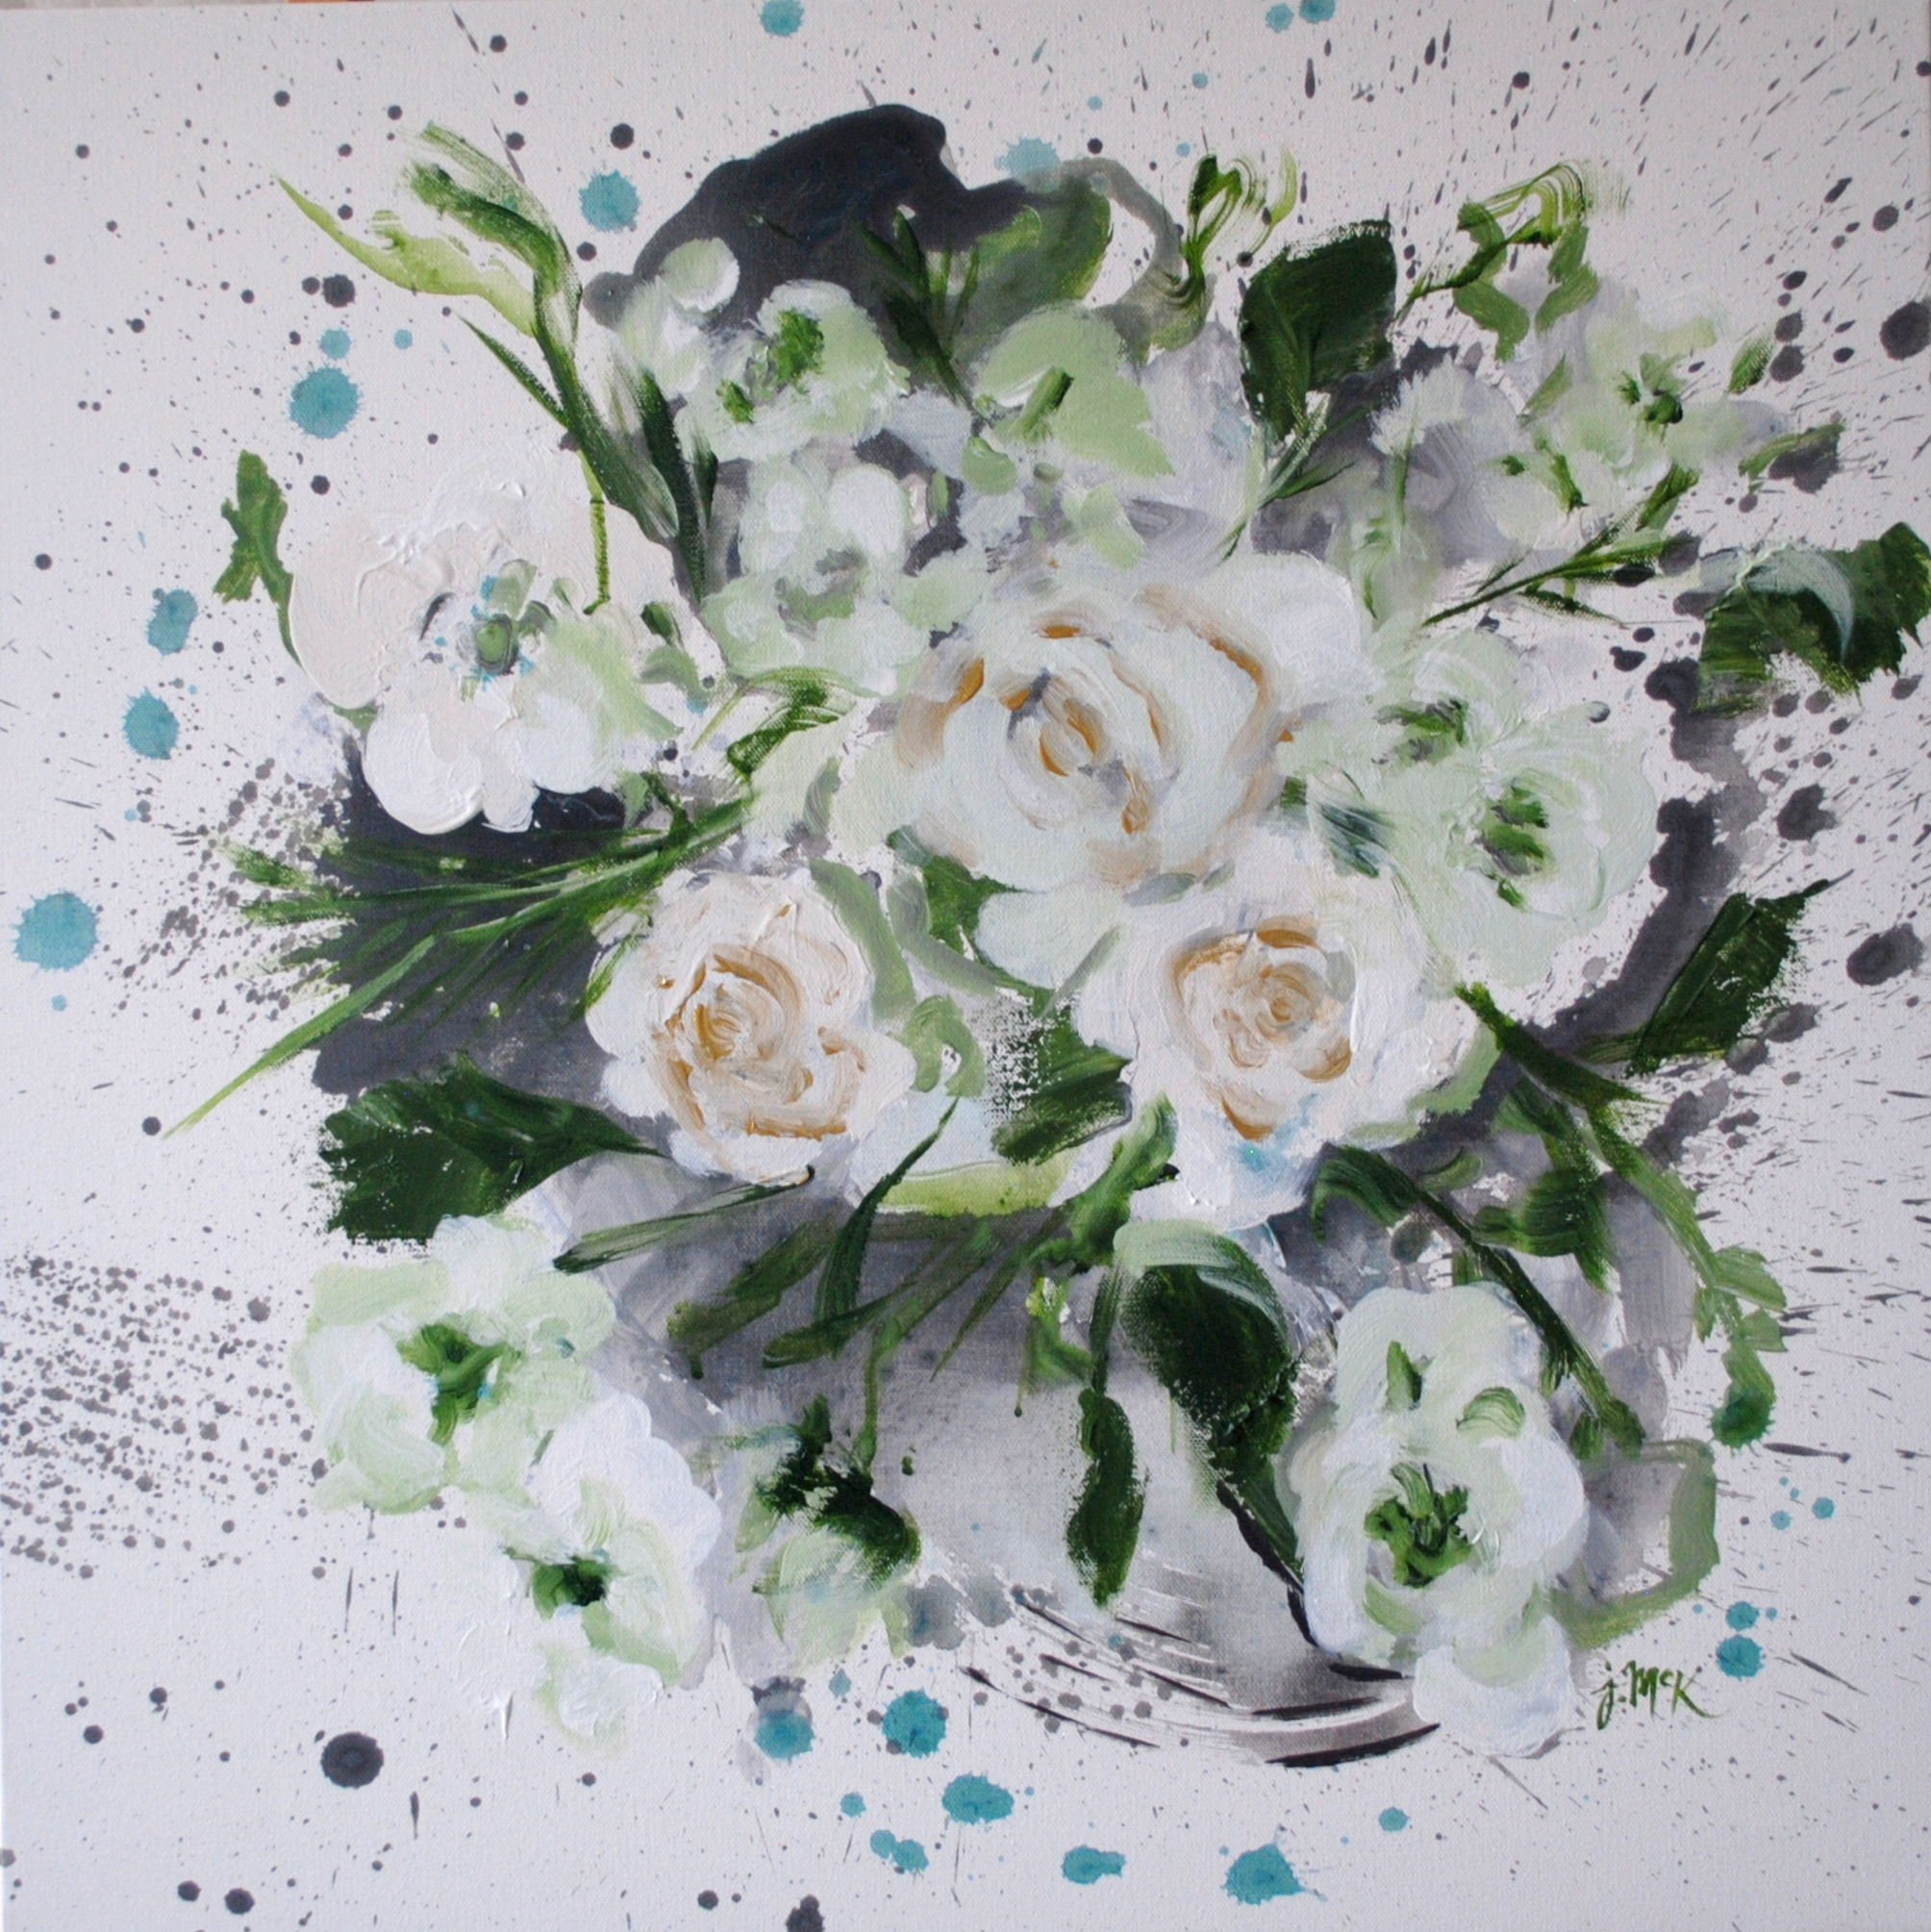 Abstract painting of white and green flowers